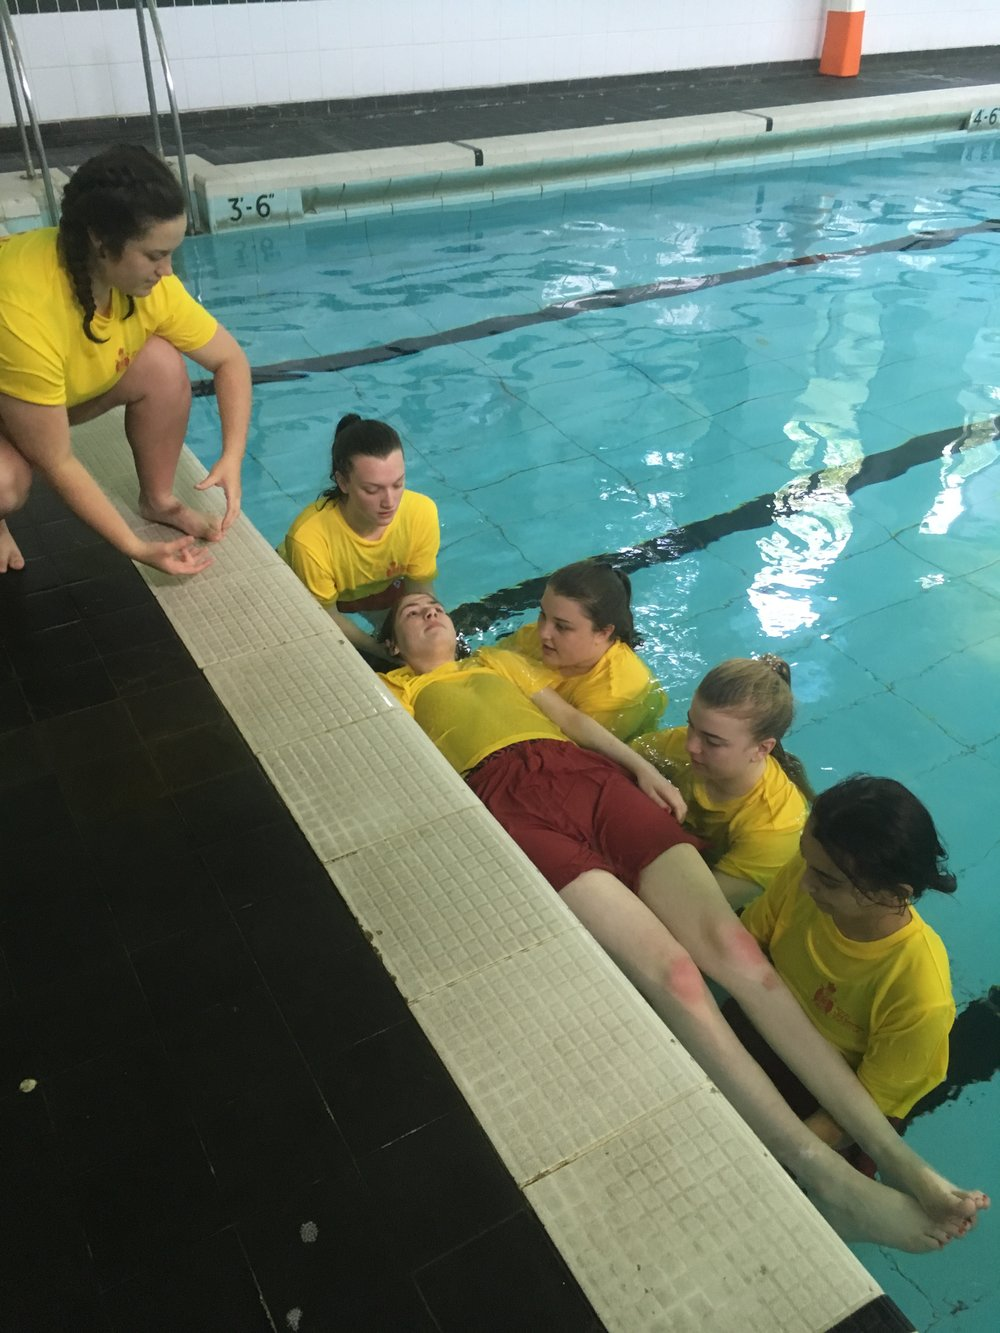 National pool lifeguard qualifications st bede 39 s and st - Emergency action plan swimming pool ...